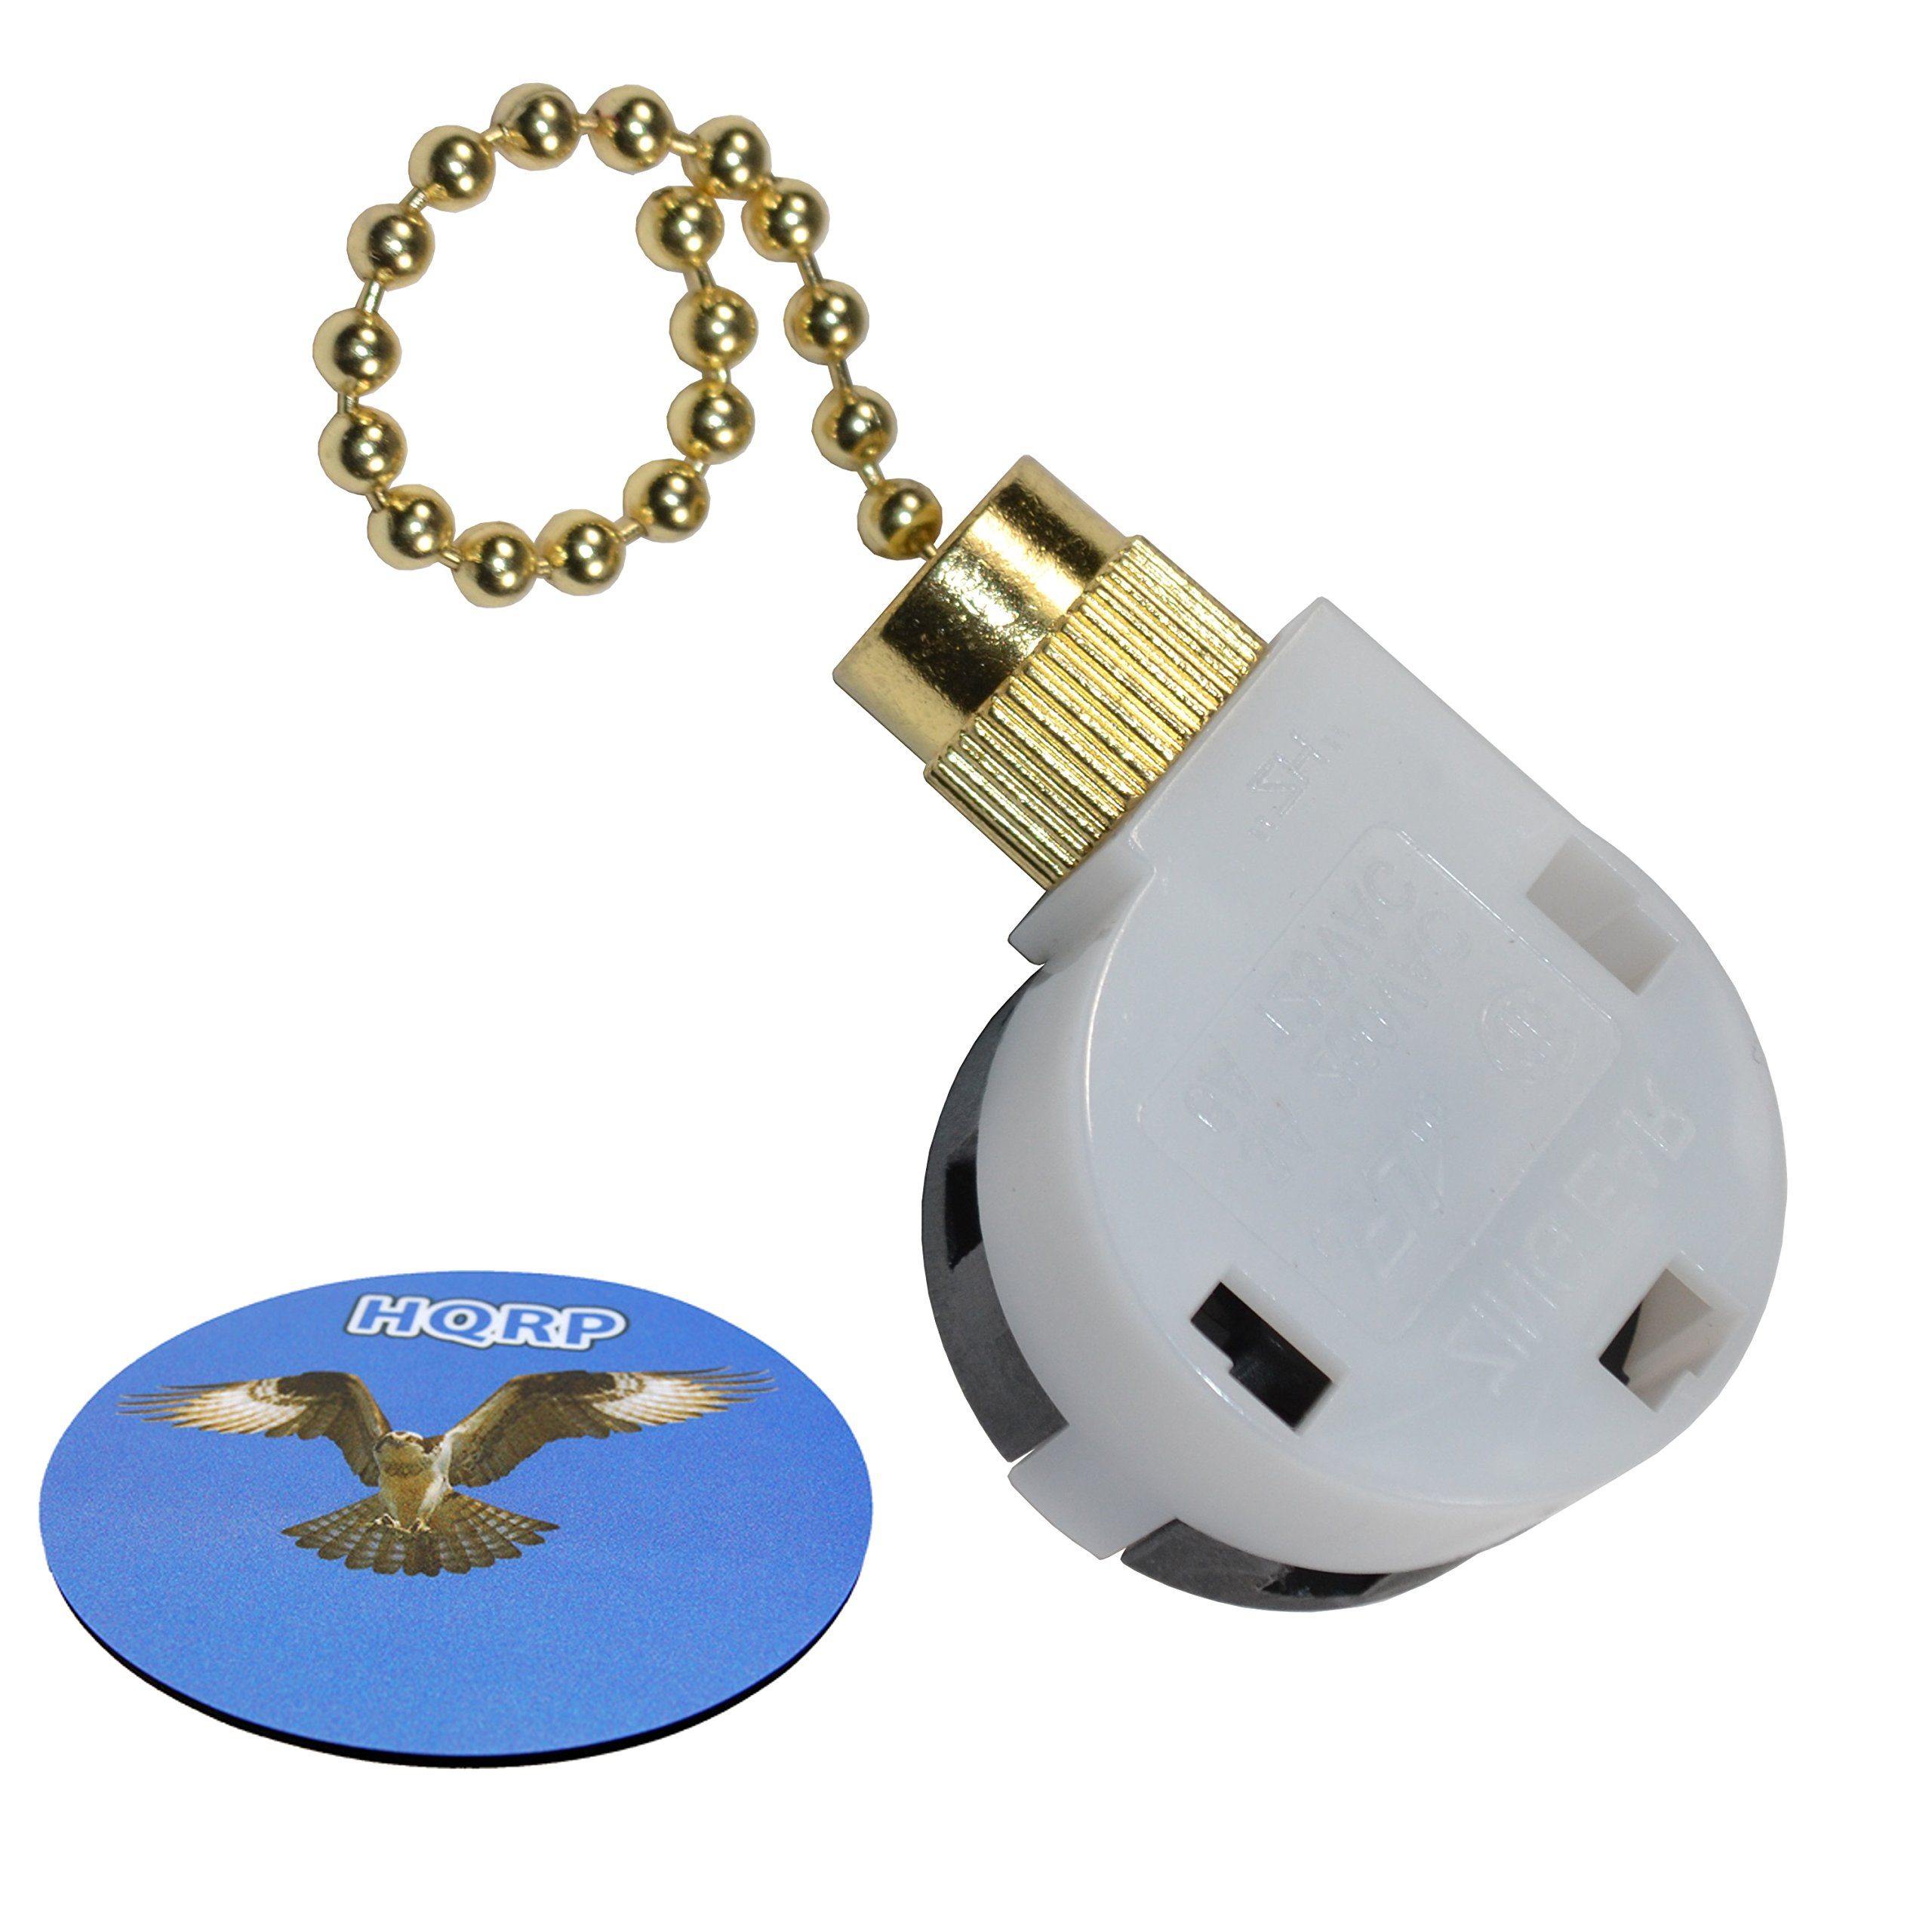 Cheap 4 Wire Ceiling Fan Switch  Find 4 Wire Ceiling Fan Switch Deals On Line At Alibaba Com